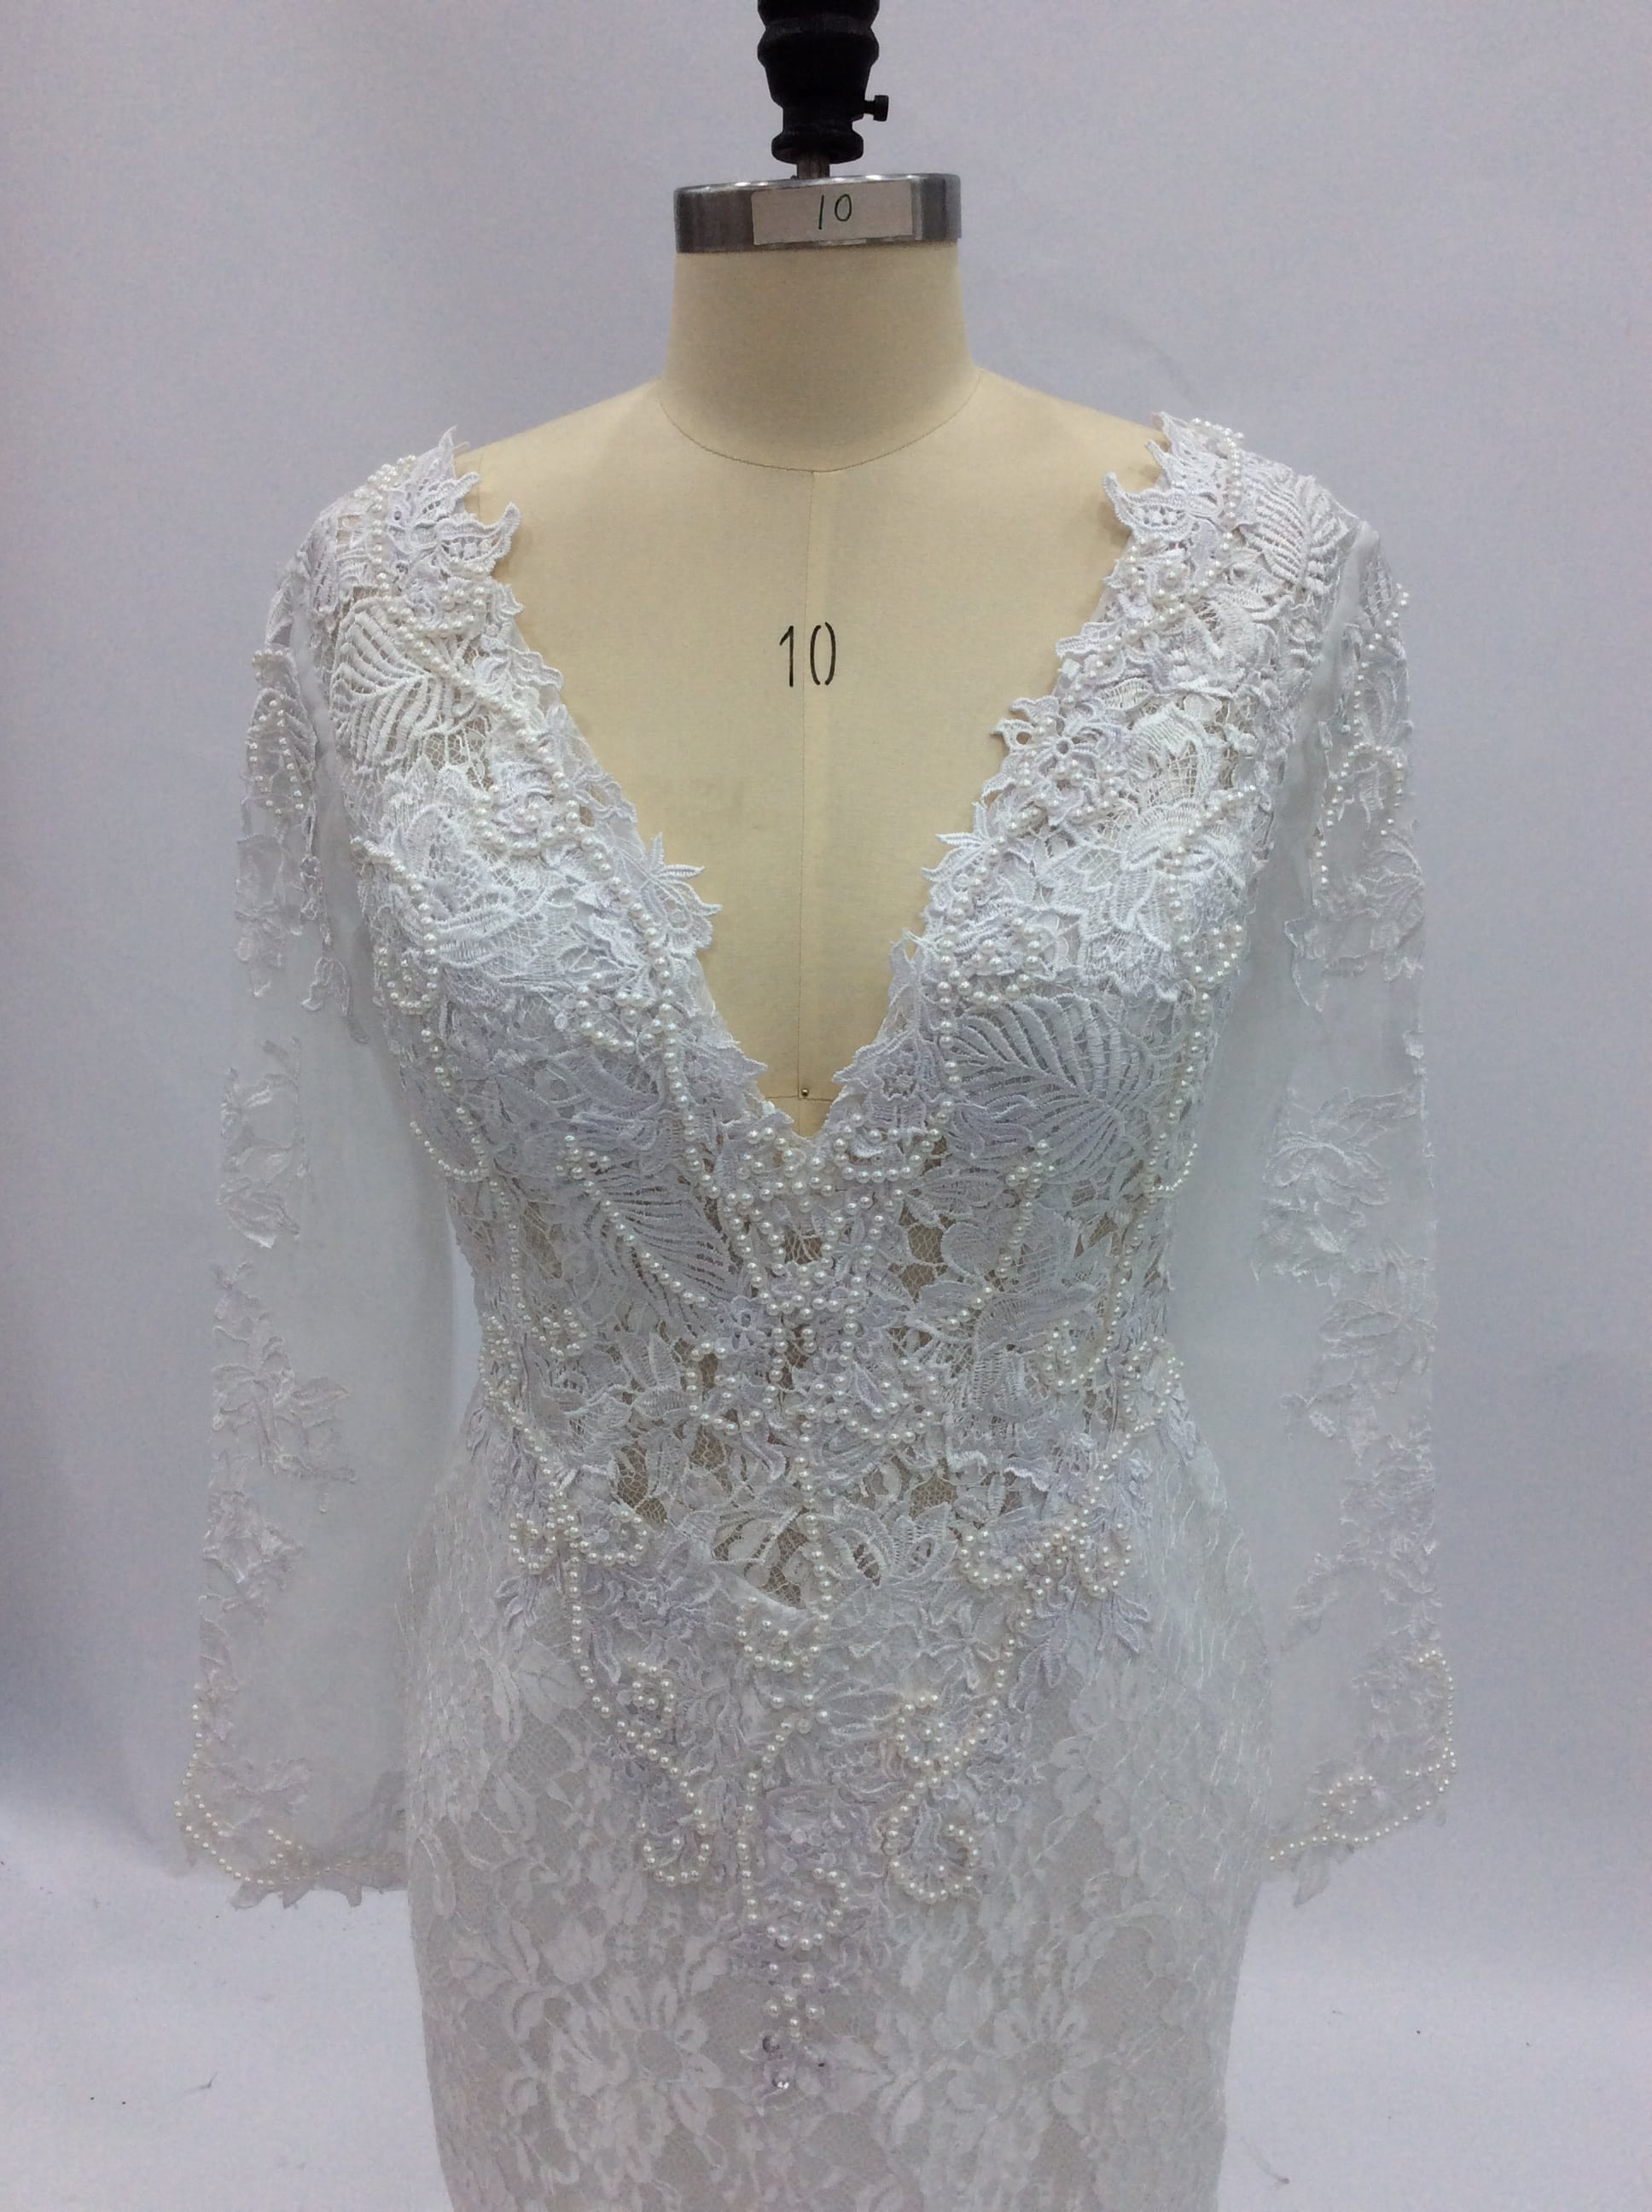 Pearl beaded lace wedding gown from Darius Cordell